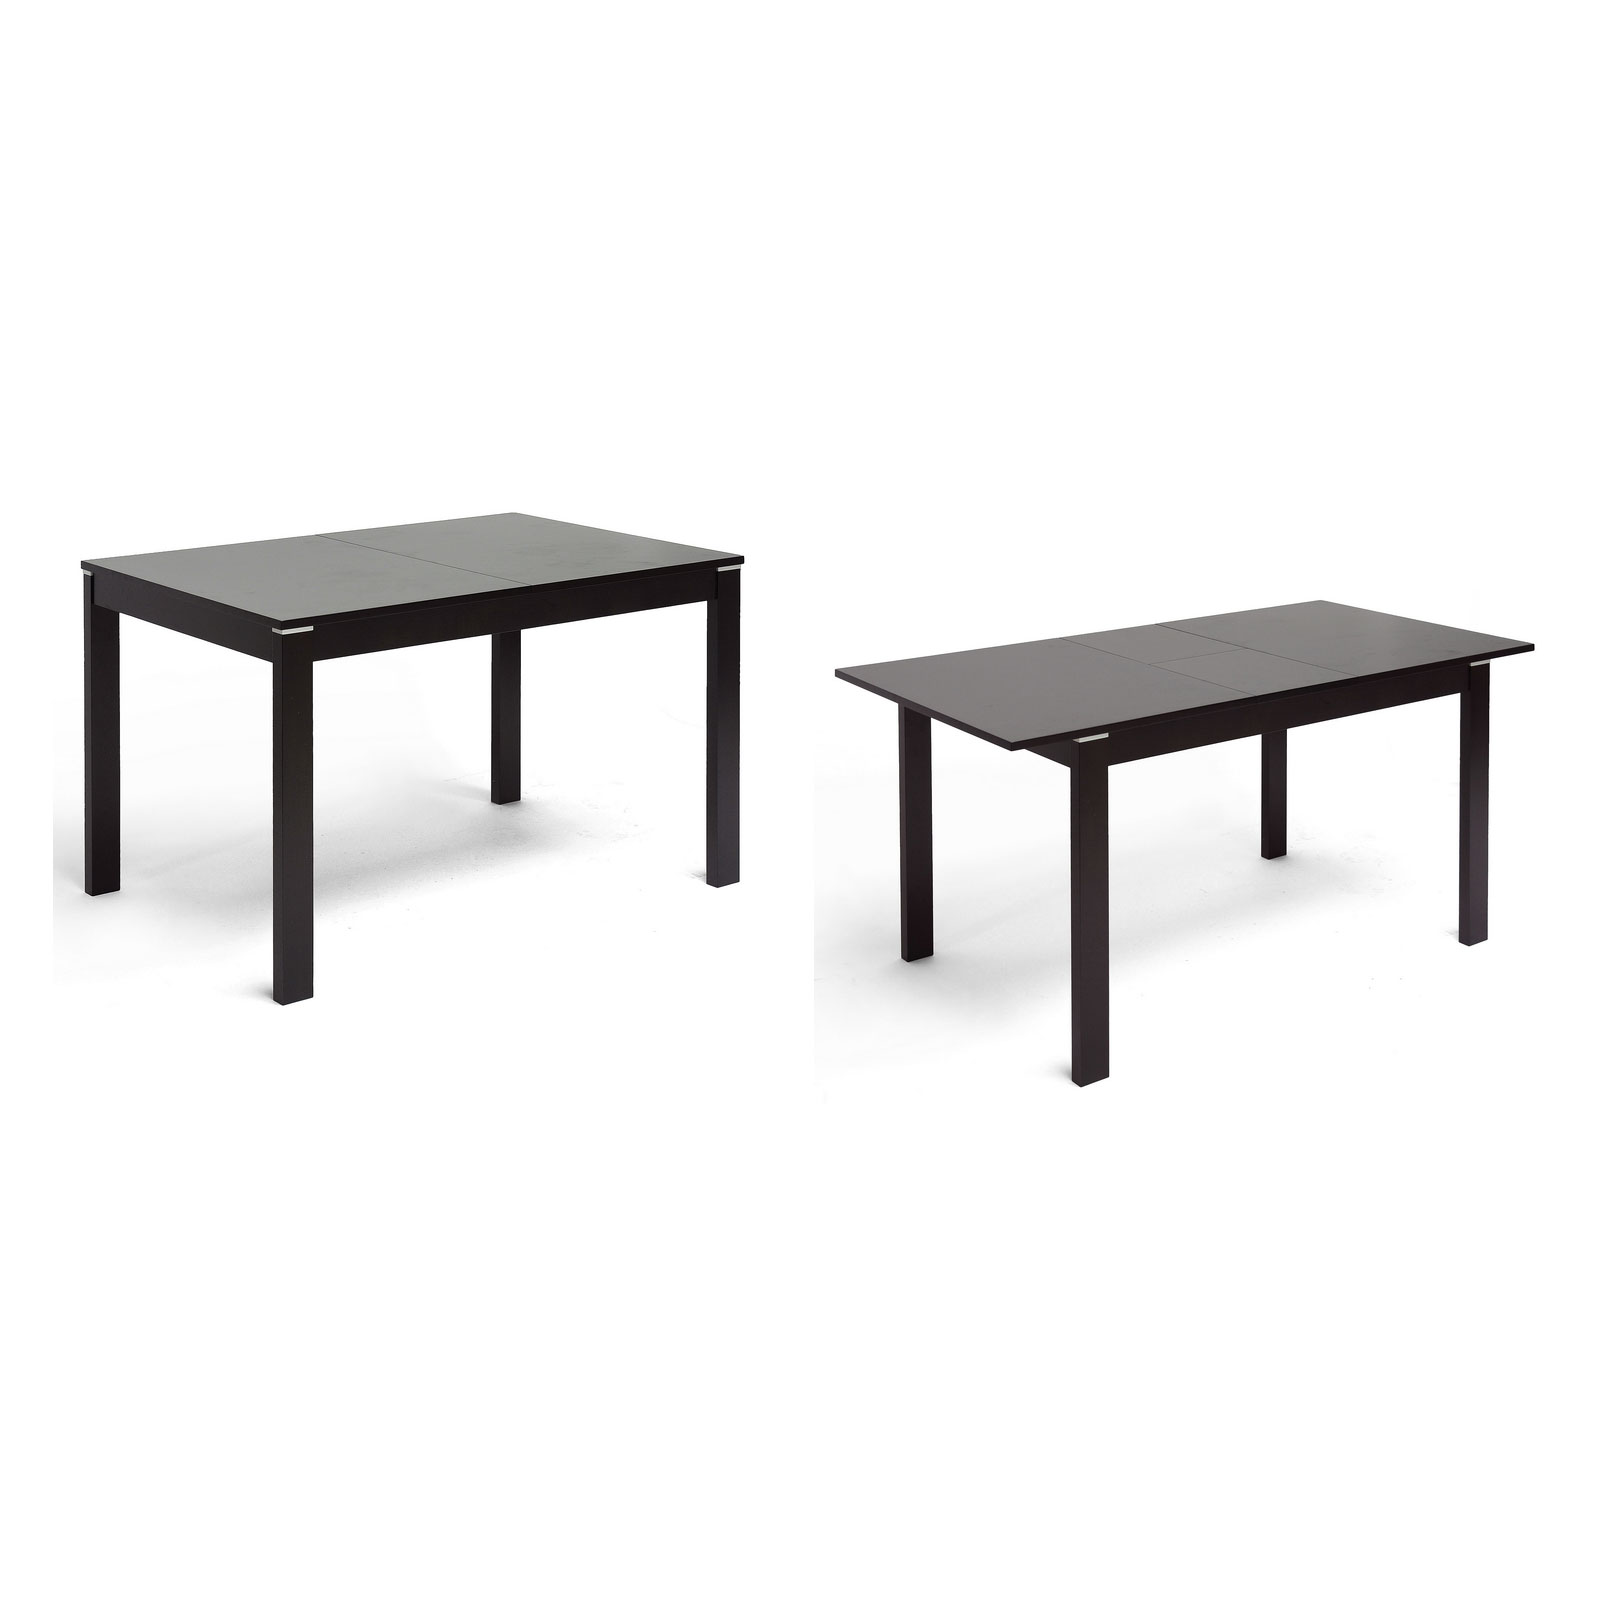 Modern Dining Table With Leaf Baxton Studio Lockerbie Modern Dining Table With Leaf